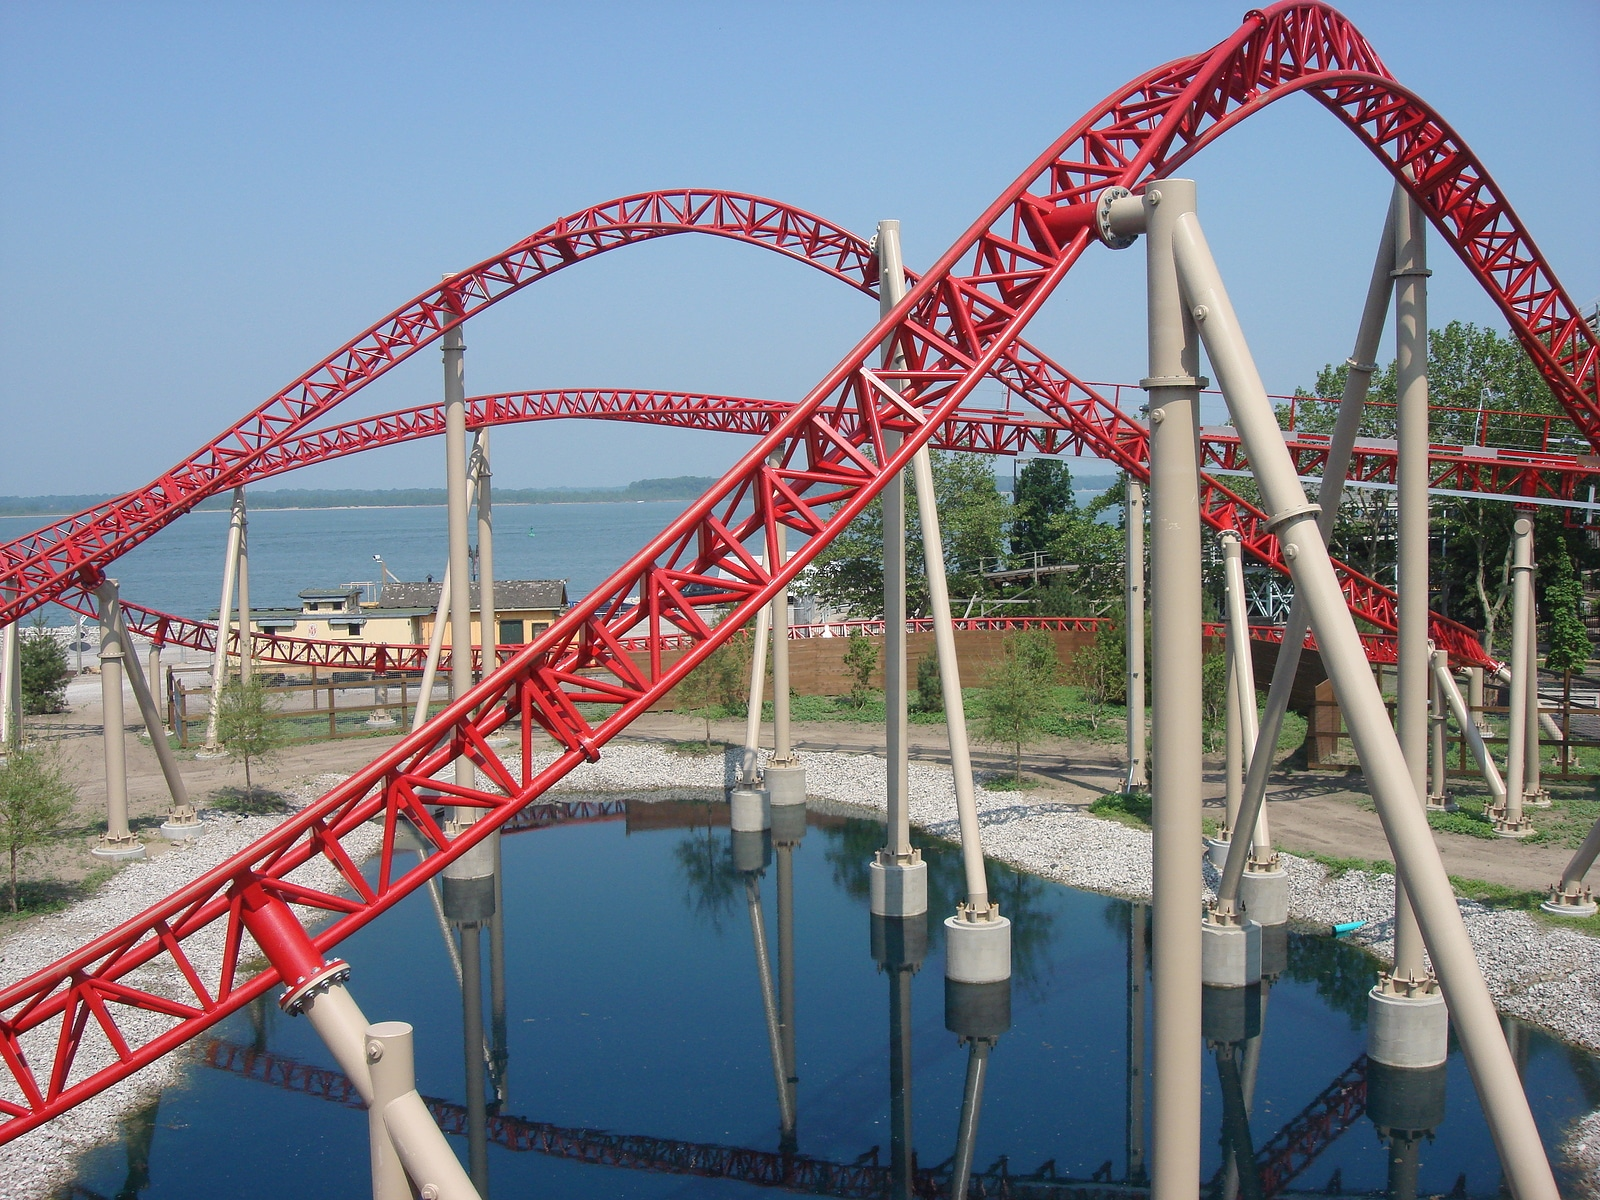 A roller coaster track in sandusky ohio by Booking Express Travel